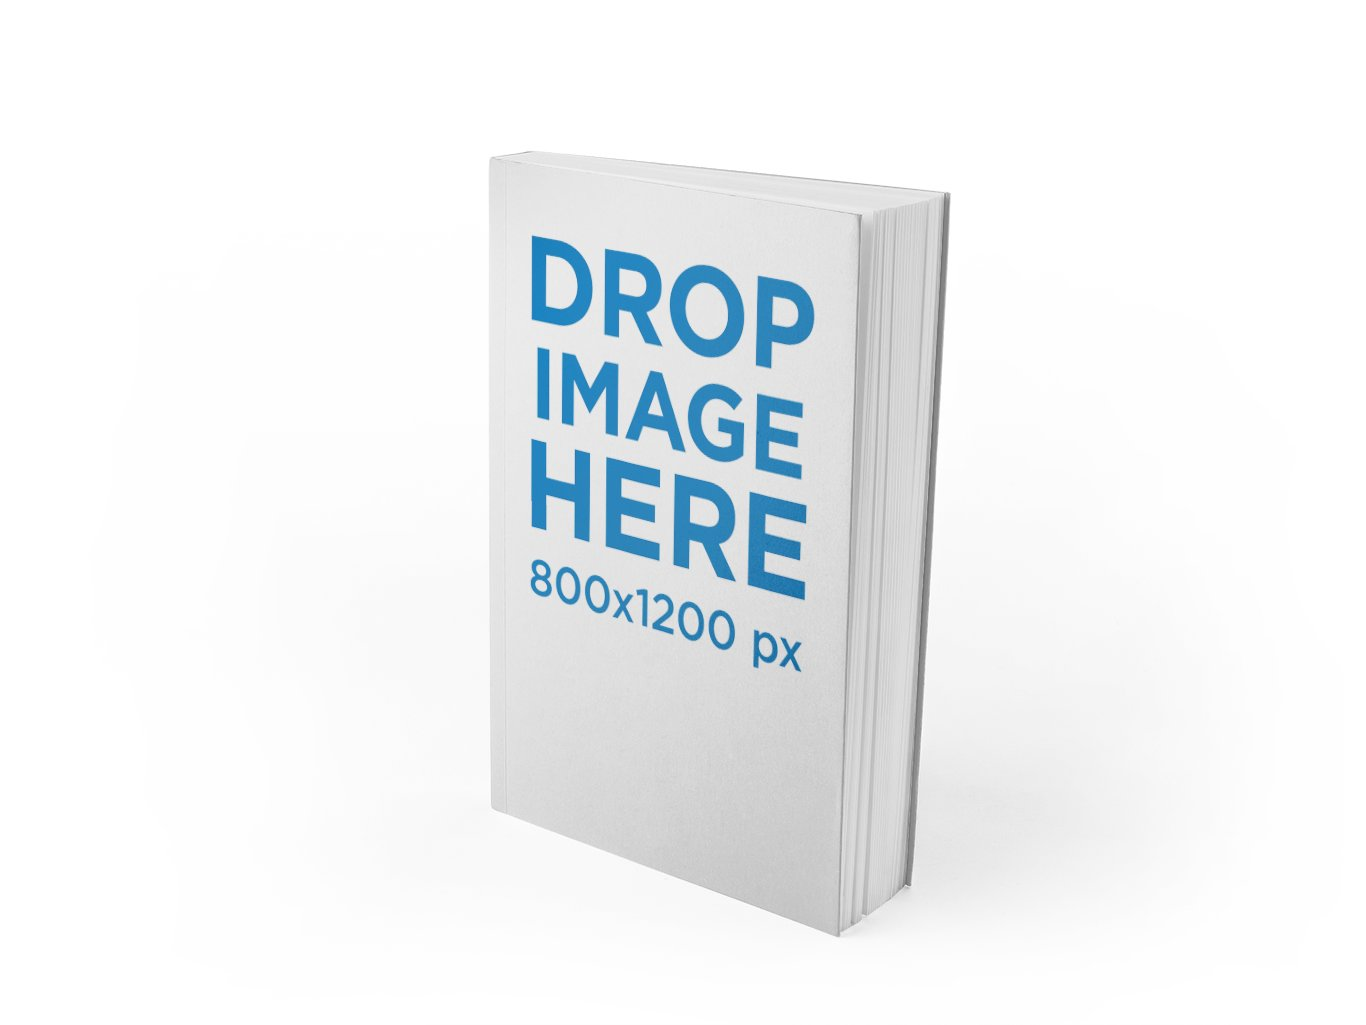 how to create a ebook cover in photoshop